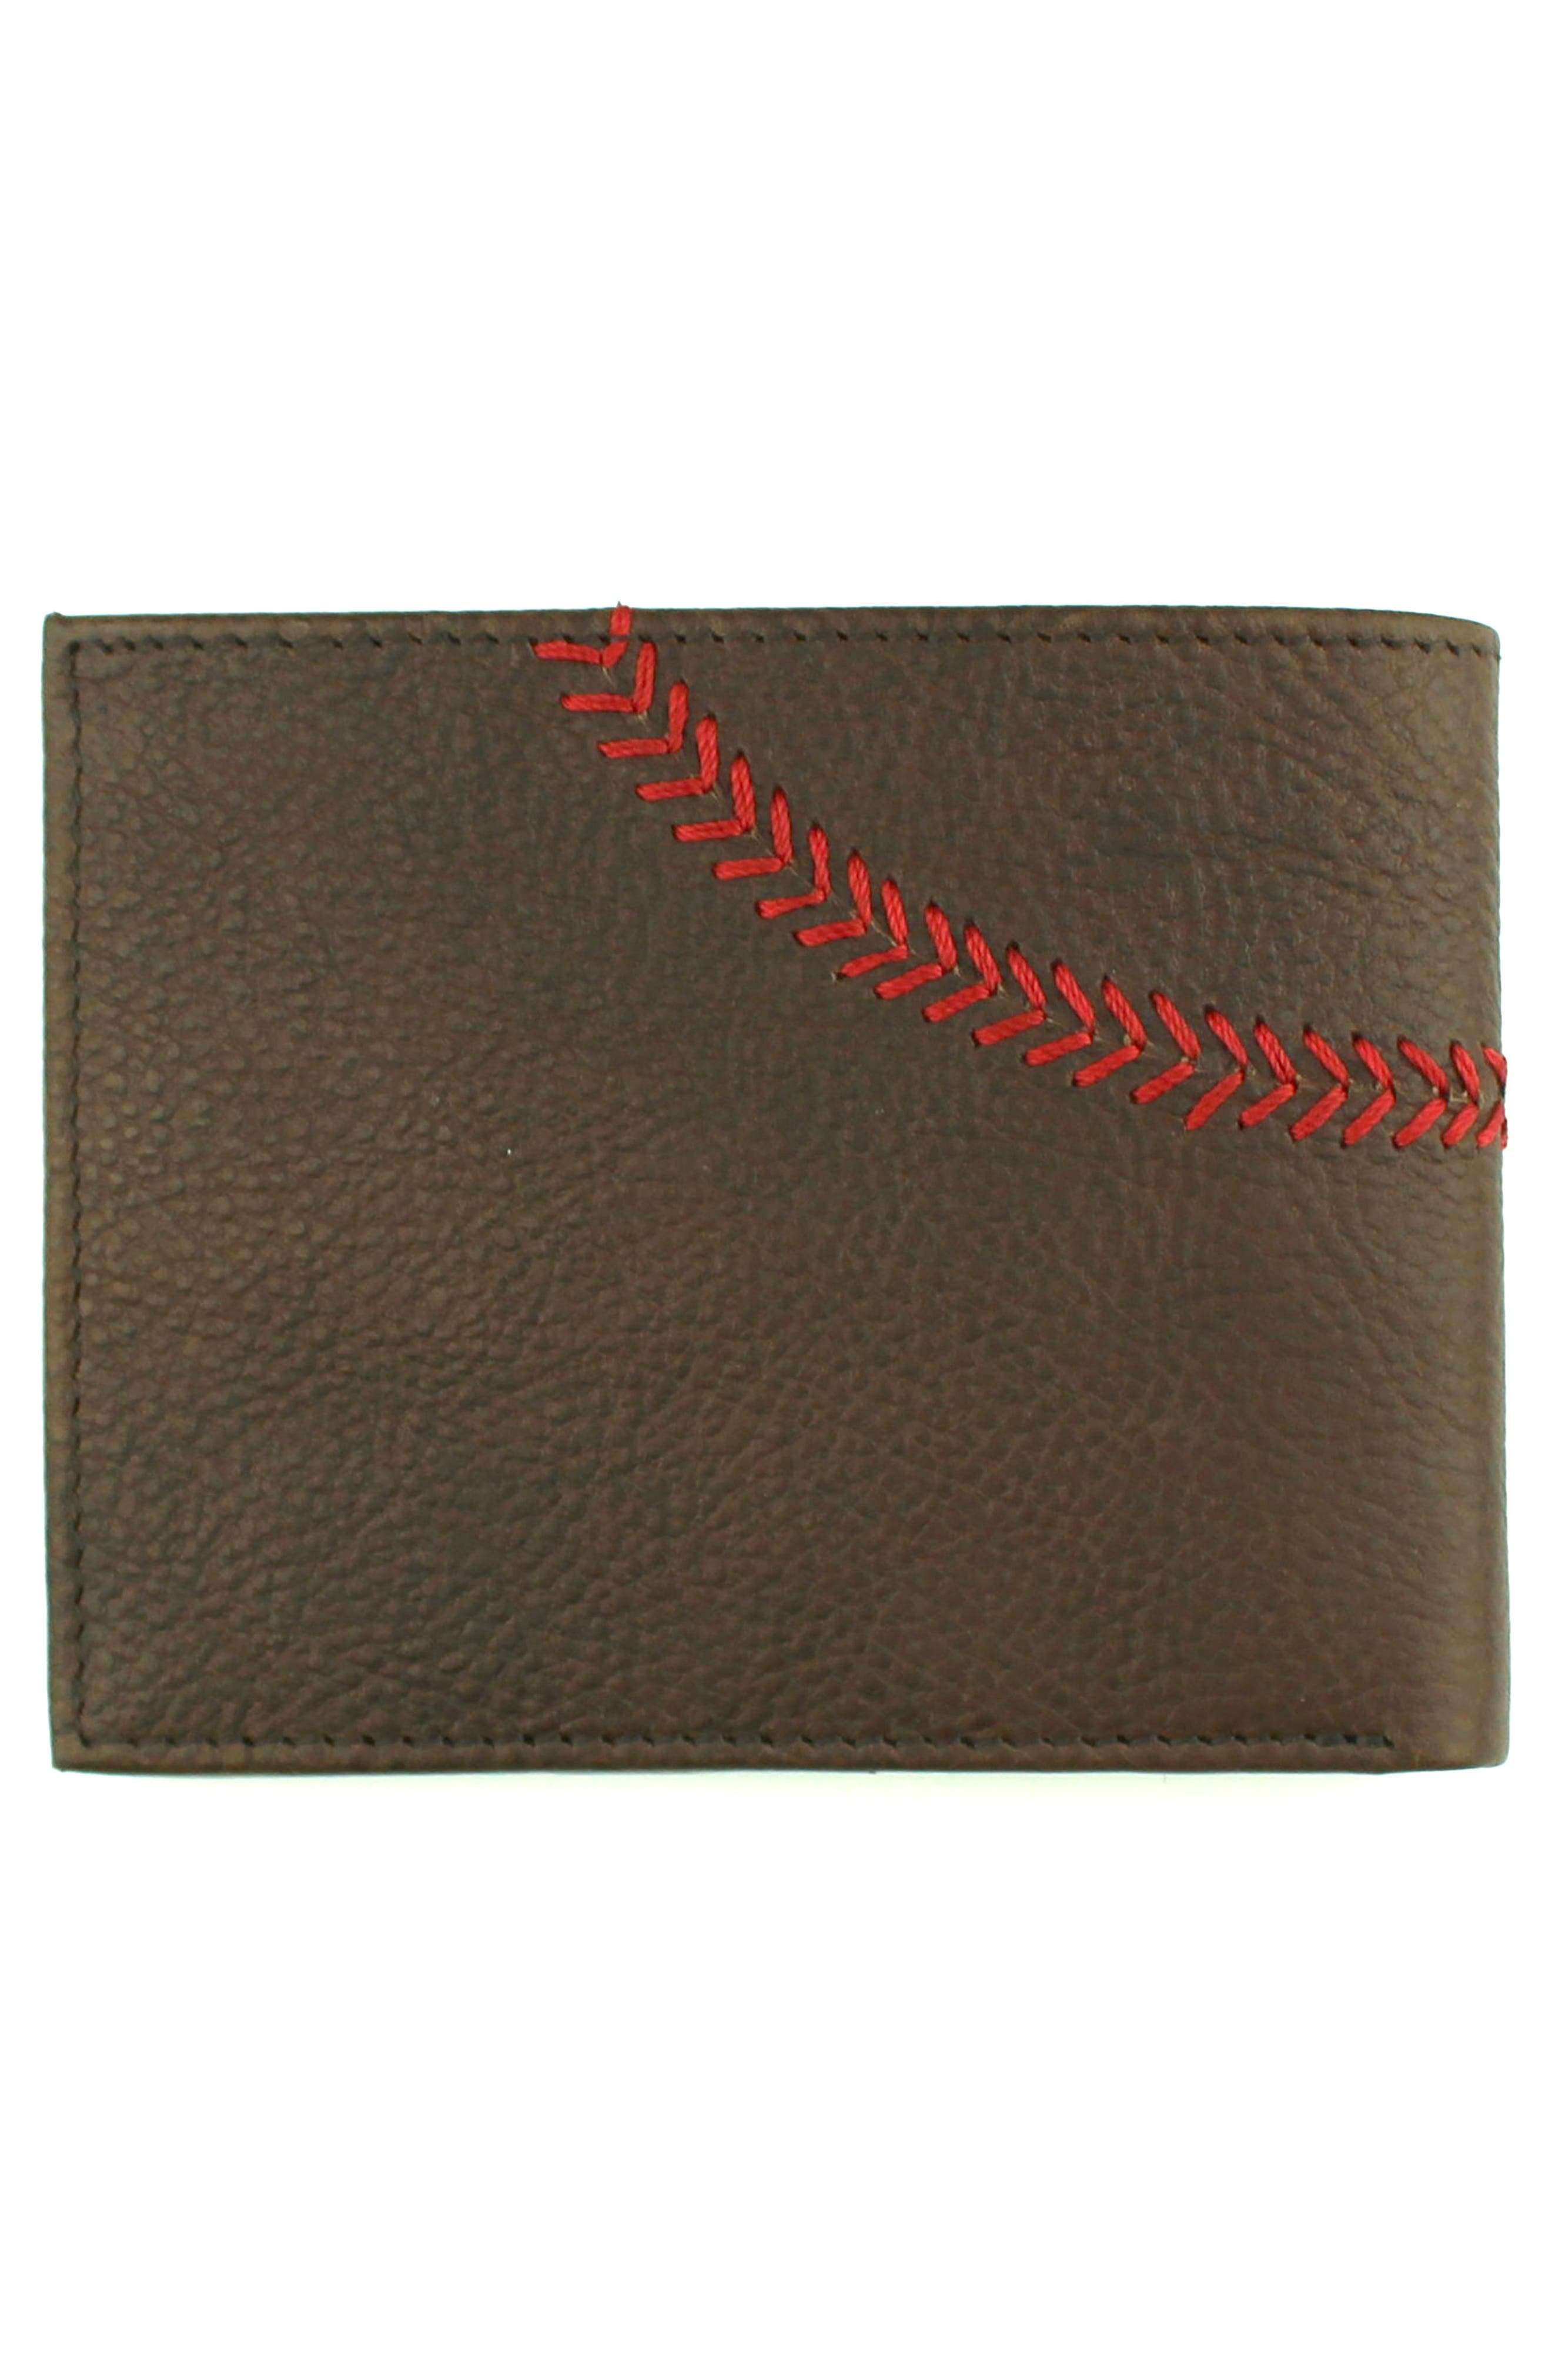 Home Run Bifold Leather Wallet,                             Alternate thumbnail 4, color,